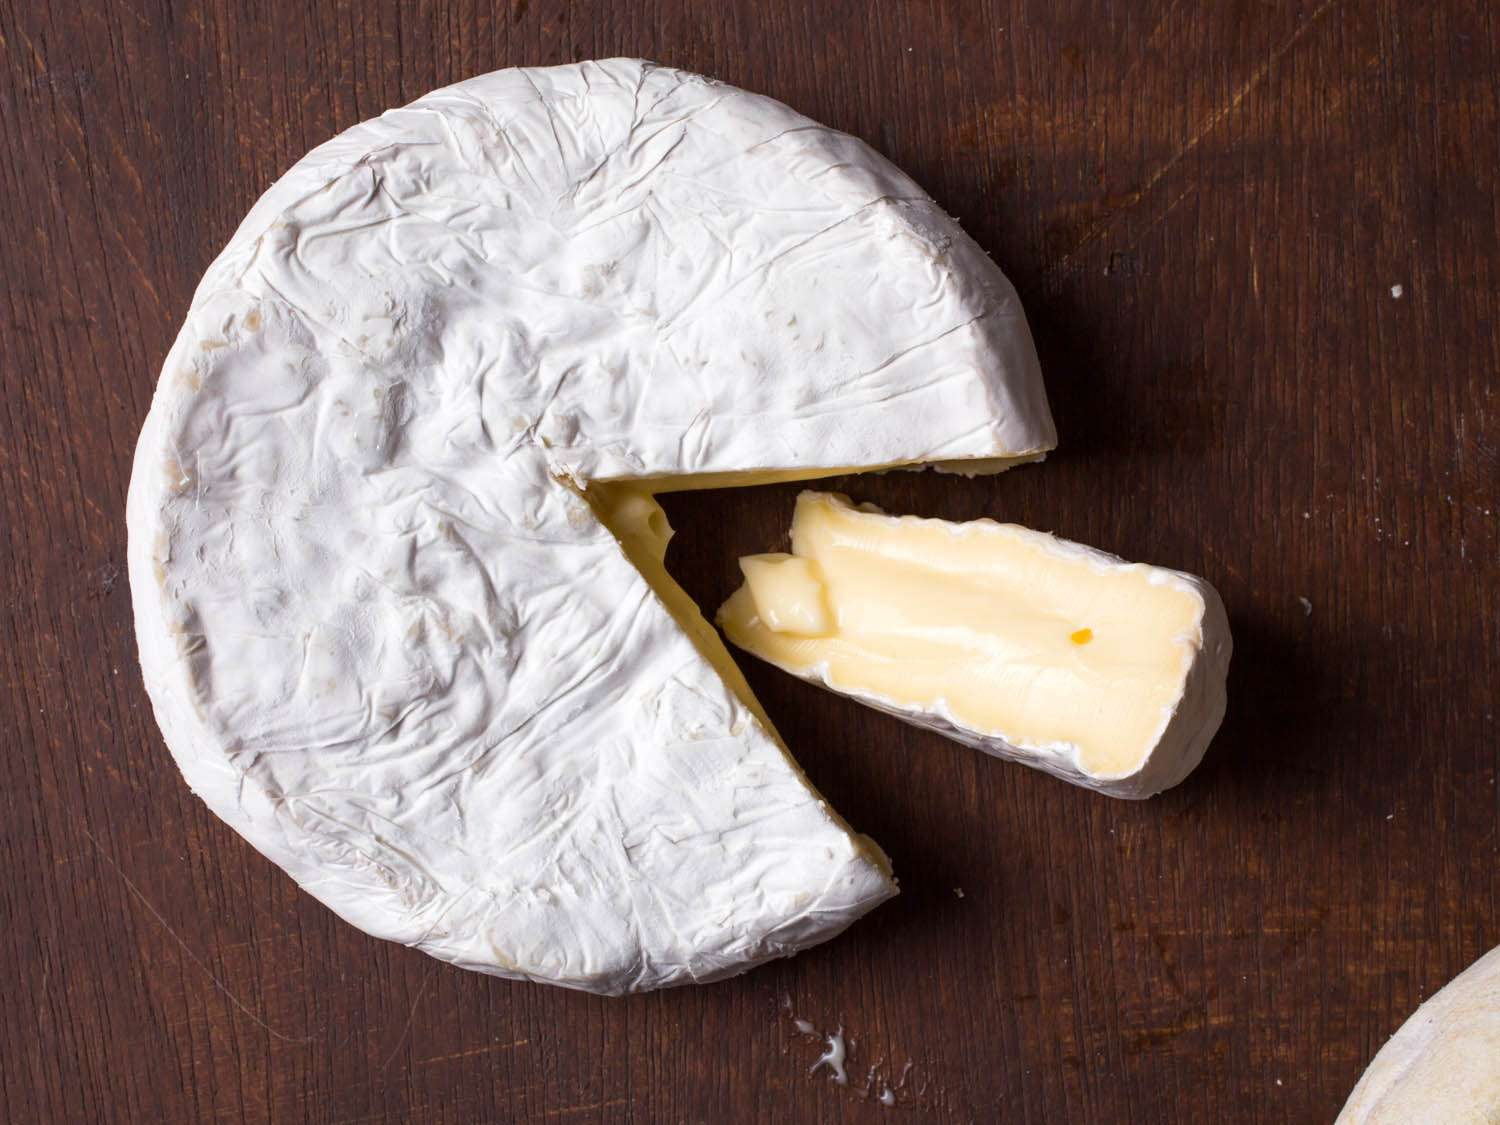 20141021-cheese101-southern-cheese-green-hill-vicky-wasik-21.jpg